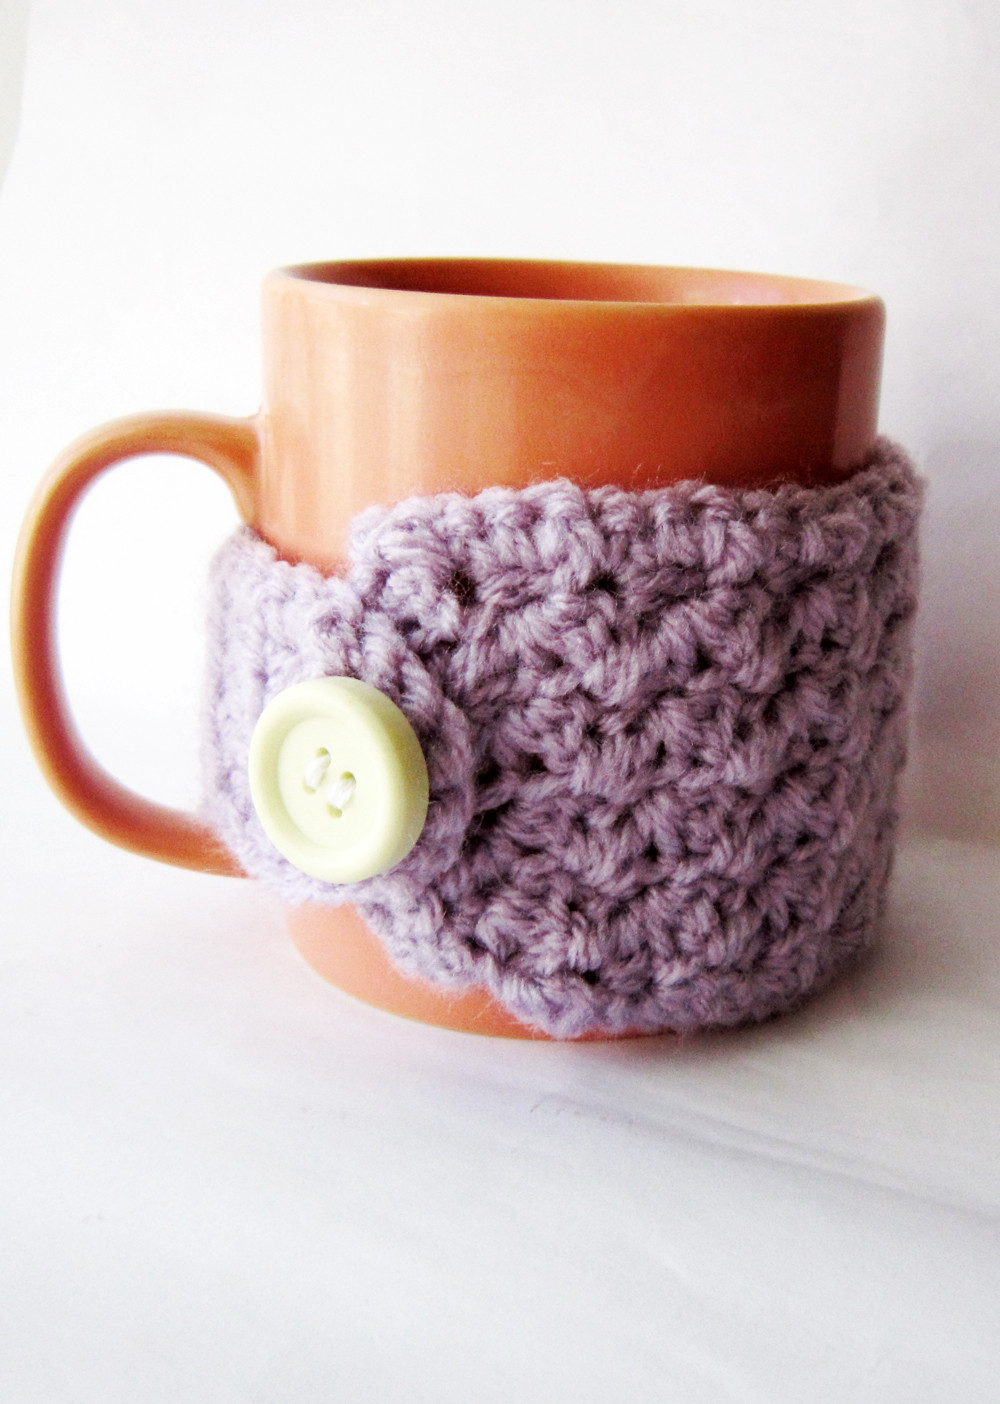 Crochet Coffee Cup Cozy Inspirational Easy Crochet Mug Cozy Free Pattern Akamatra Of Crochet Coffee Cup Cozy Fresh Creativity Awaits Crochet Coffee Cozy Patterns Stitch